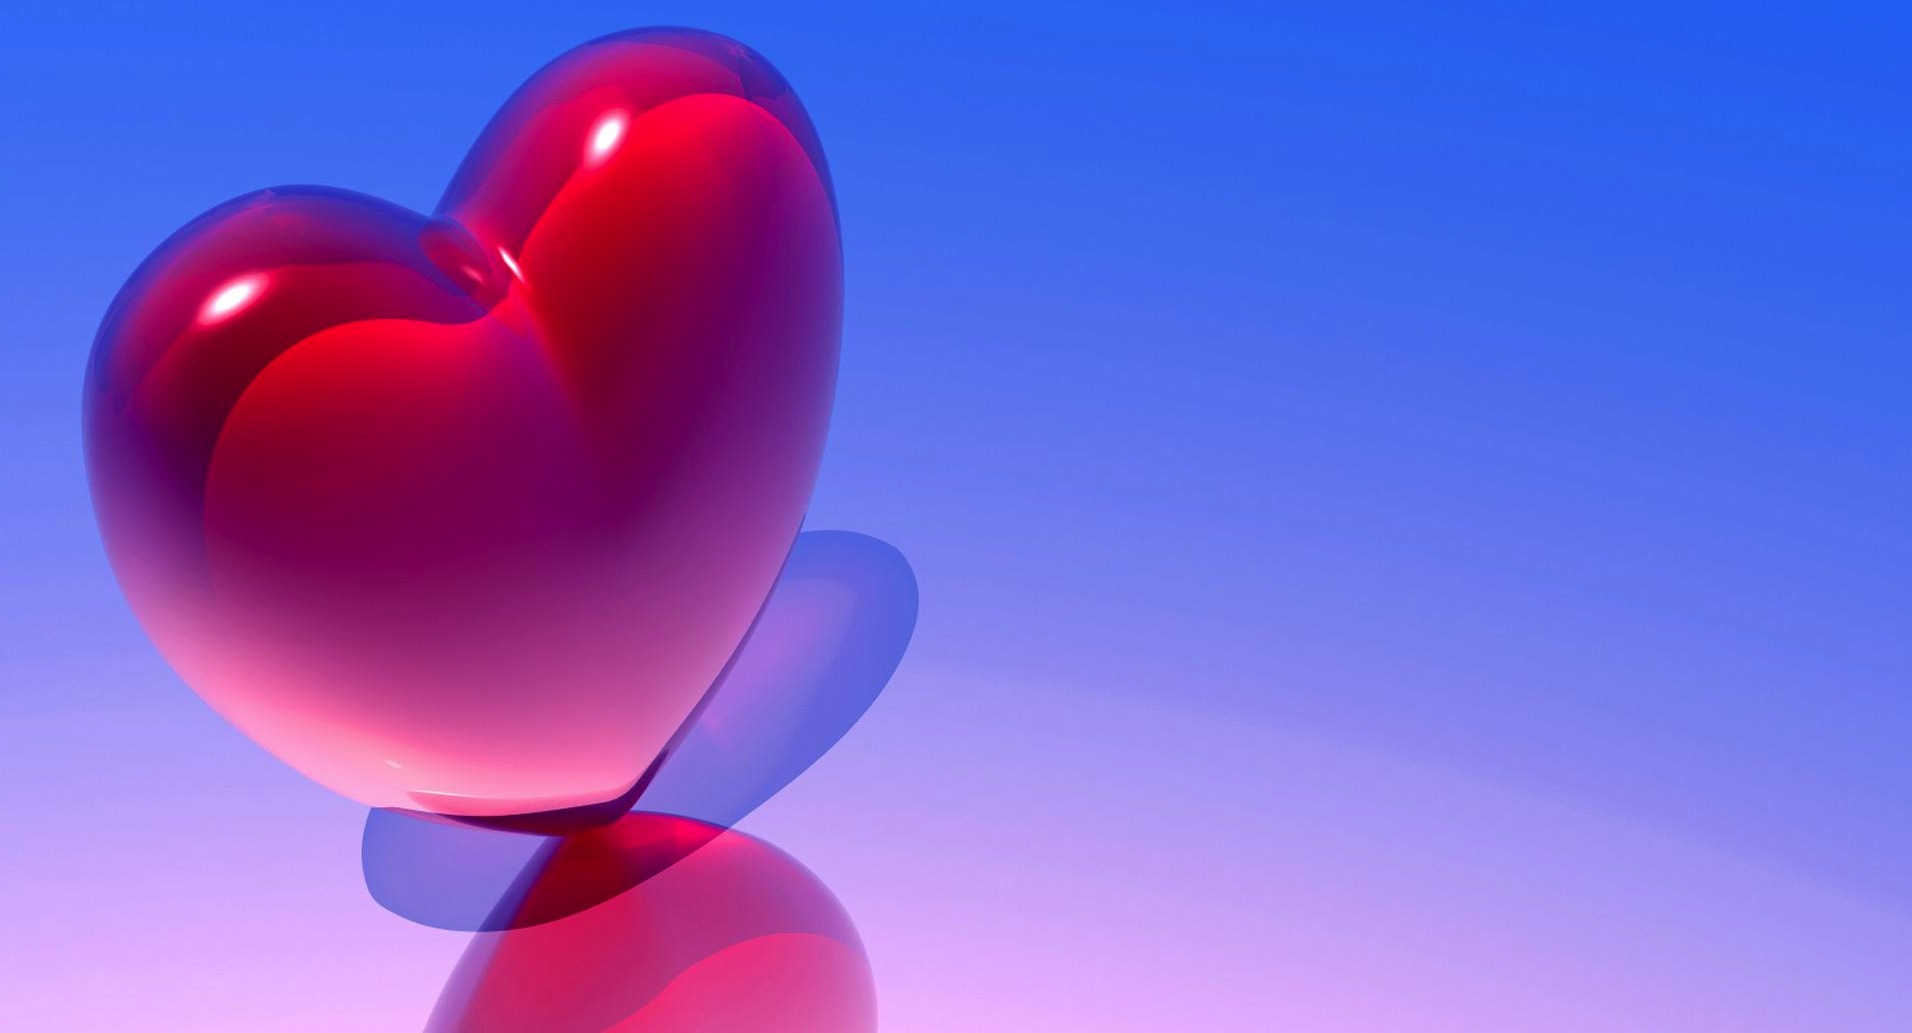 3d Heart Love Wallpapers 4852 Wallpaper: Rainbow Heart Wallpaper